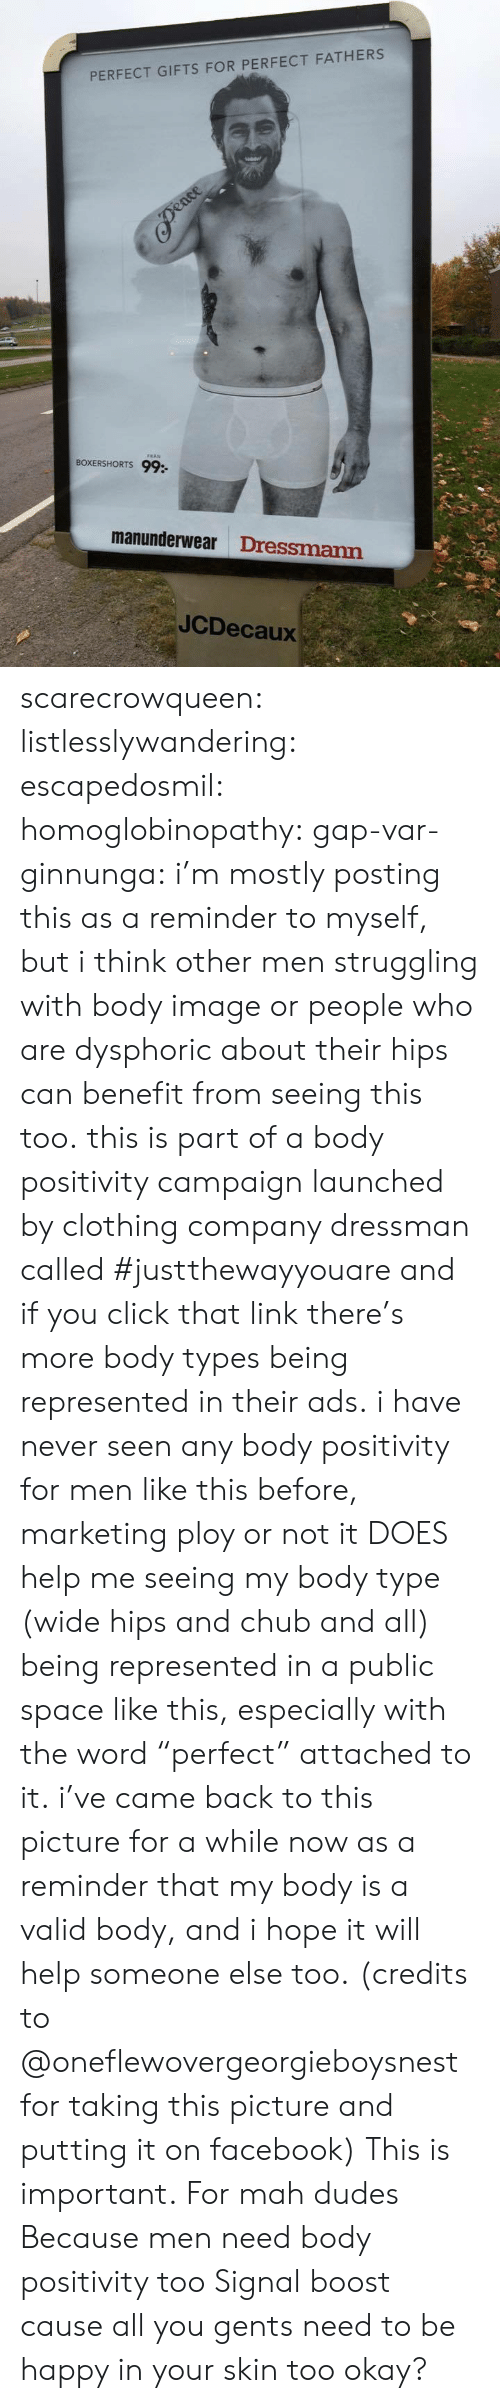 """ploy: PERFECT GIFTS FOR PERFECT FATHERS  BOXERSHORTS 99:  manunderwear Dressmann  JCDecaux scarecrowqueen:  listlesslywandering:  escapedosmil:  homoglobinopathy:  gap-var-ginnunga:  i'm mostly posting this as a reminder to myself, but i think other men struggling with body image or people who are dysphoric about their hips can benefit from seeing this too. this is part of a body positivity campaign launched by clothing company dressman called #justthewayyouareand if you click that link there's more body types being represented in their ads. i have never seen any body positivity for men like this before, marketing ploy or not it DOES help me seeing my body type (wide hips and chub and all) being represented in a public space like this, especially with the word""""perfect"""" attached to it. i've came back to this picture for a while now as a reminder that my body is a valid body, and i hope it will help someone else too. (credits to @oneflewovergeorgieboysnest for taking this picture and putting it on facebook)  This is important.  For mah dudes  Because men need body positivity too  Signal boost cause all you gents need to be happy in your skin too okay?"""